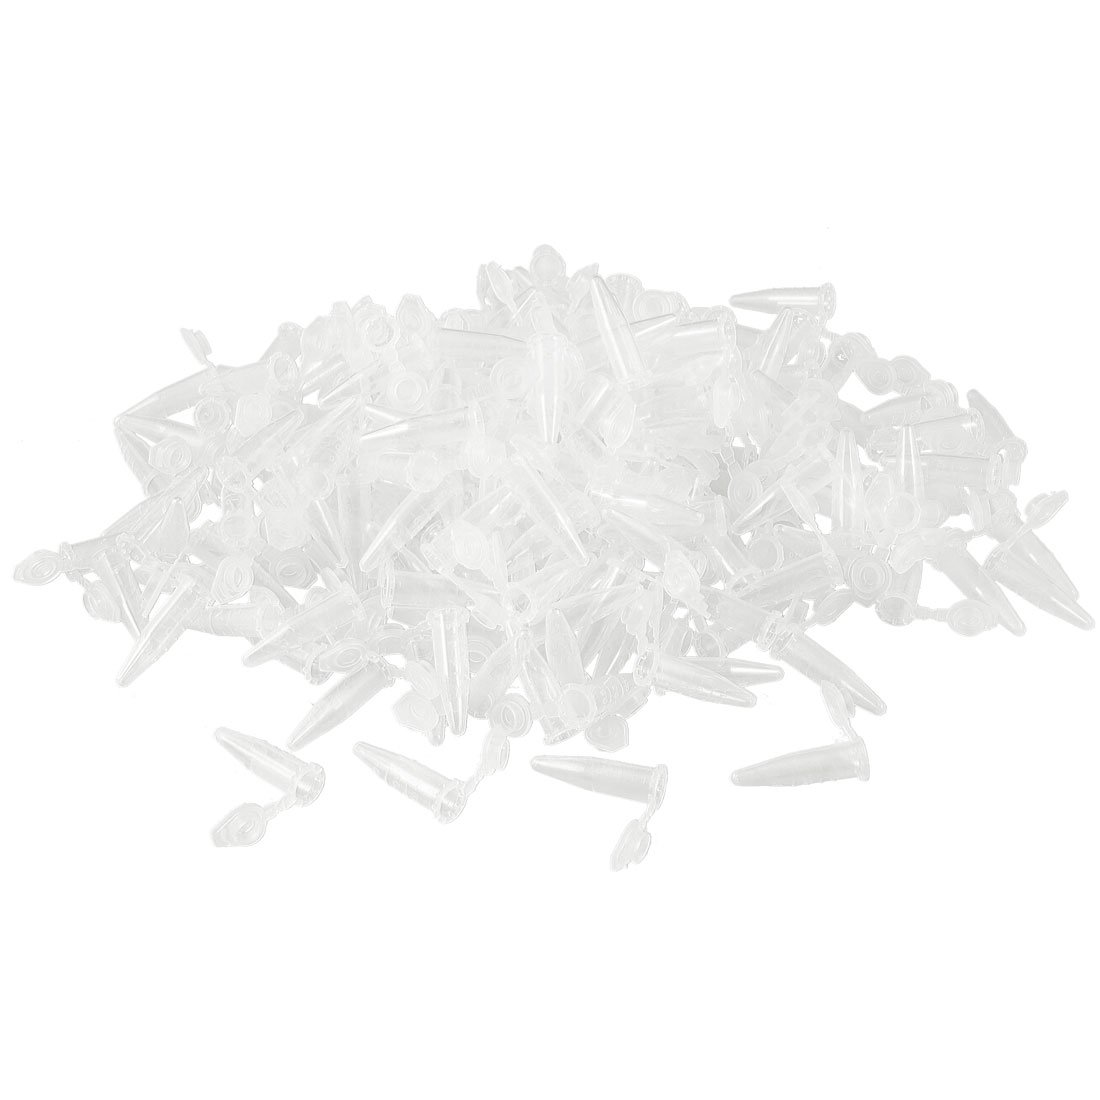 uxcell 1000 Pcs Laboratory Clear White Mark Printed Plastic Centrifuge Tube 0.5ml